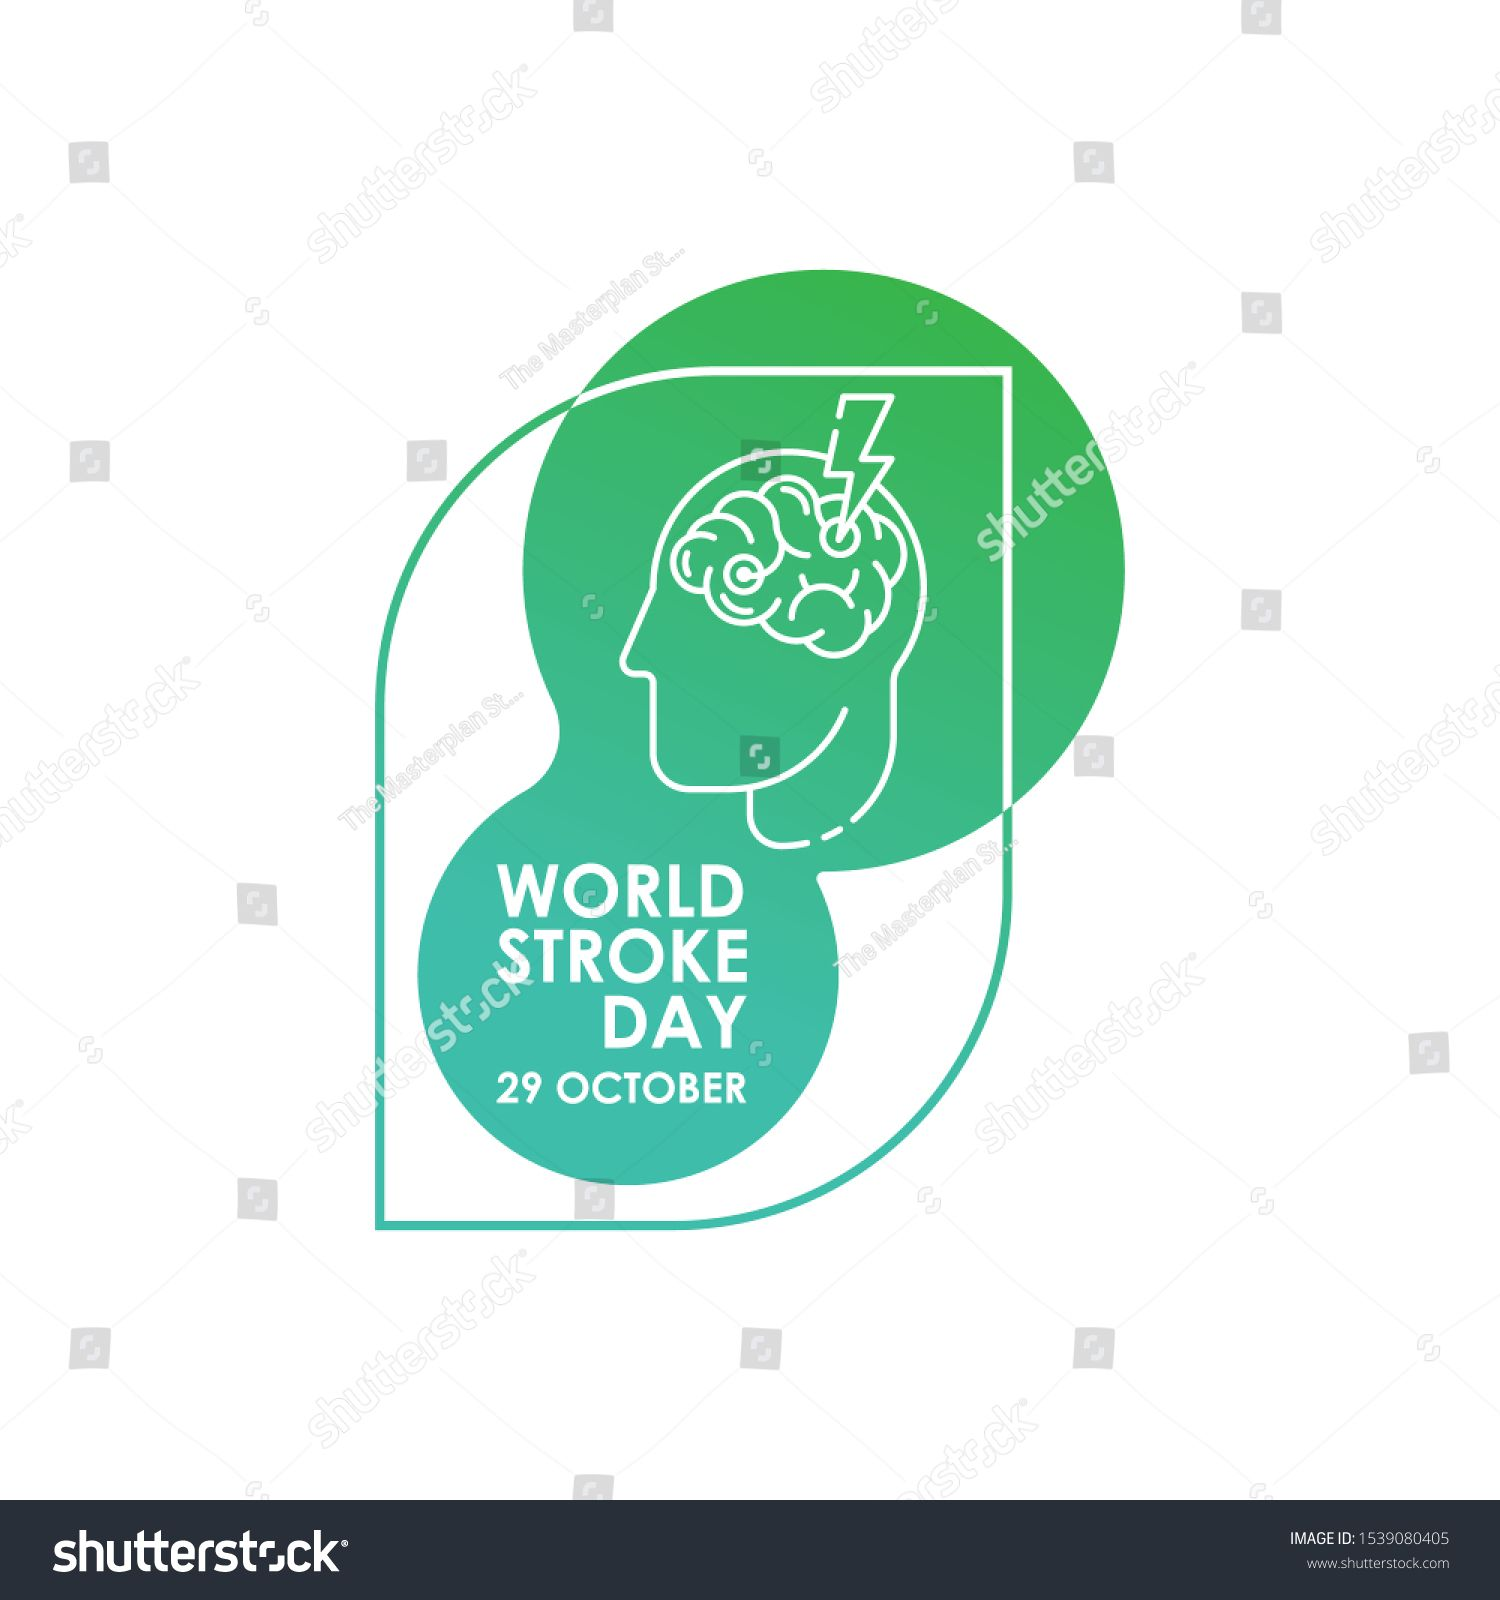 World Stroke Day Vector Logo Poster Illustration Of World Stroke Day On October 29th Health Care Awareness Campaign Ad Aff Vector Logo Poster World